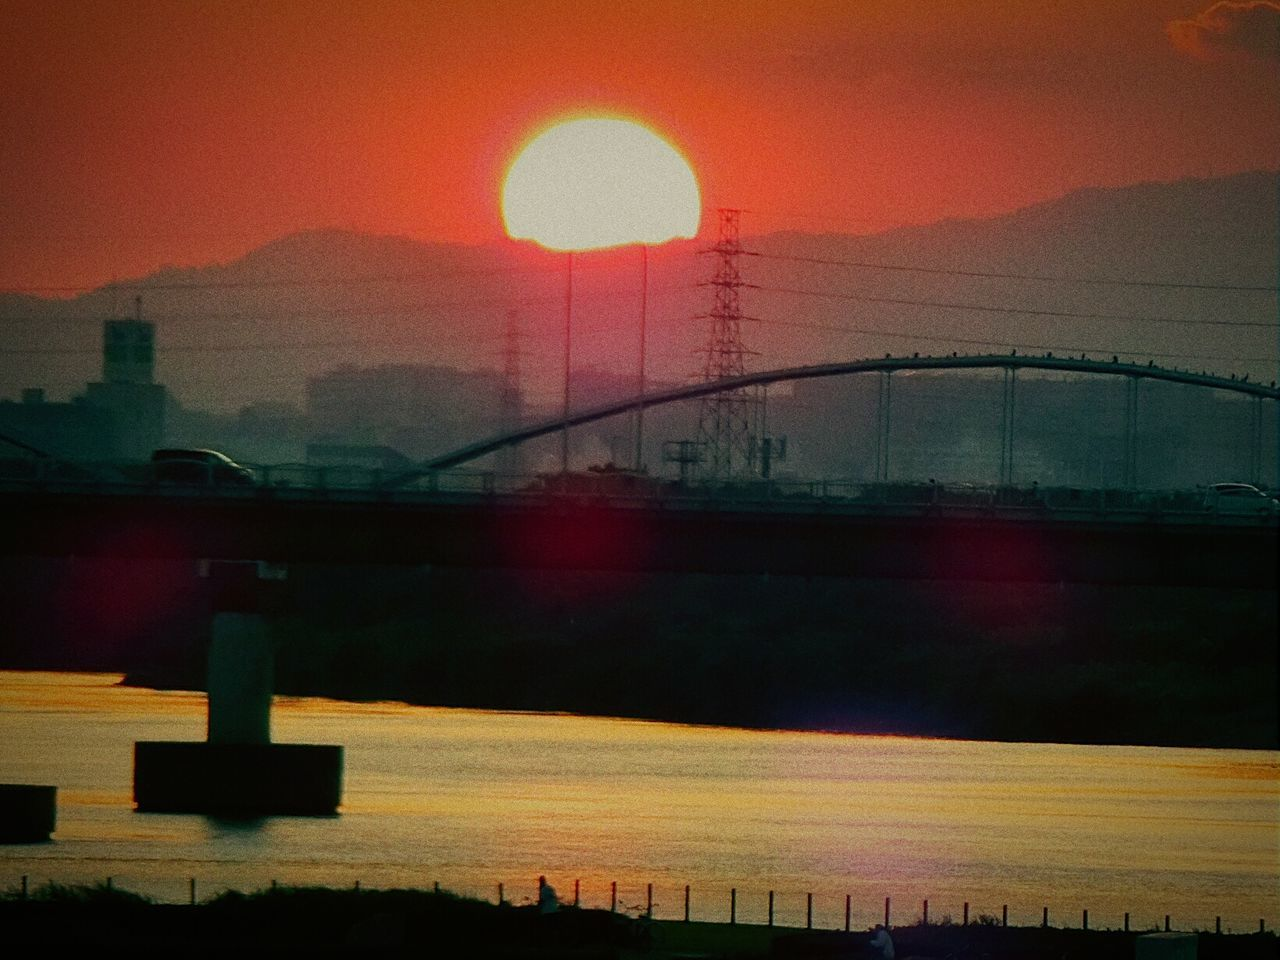 Bridge Bridgeatsunset Sunset 枚方橋